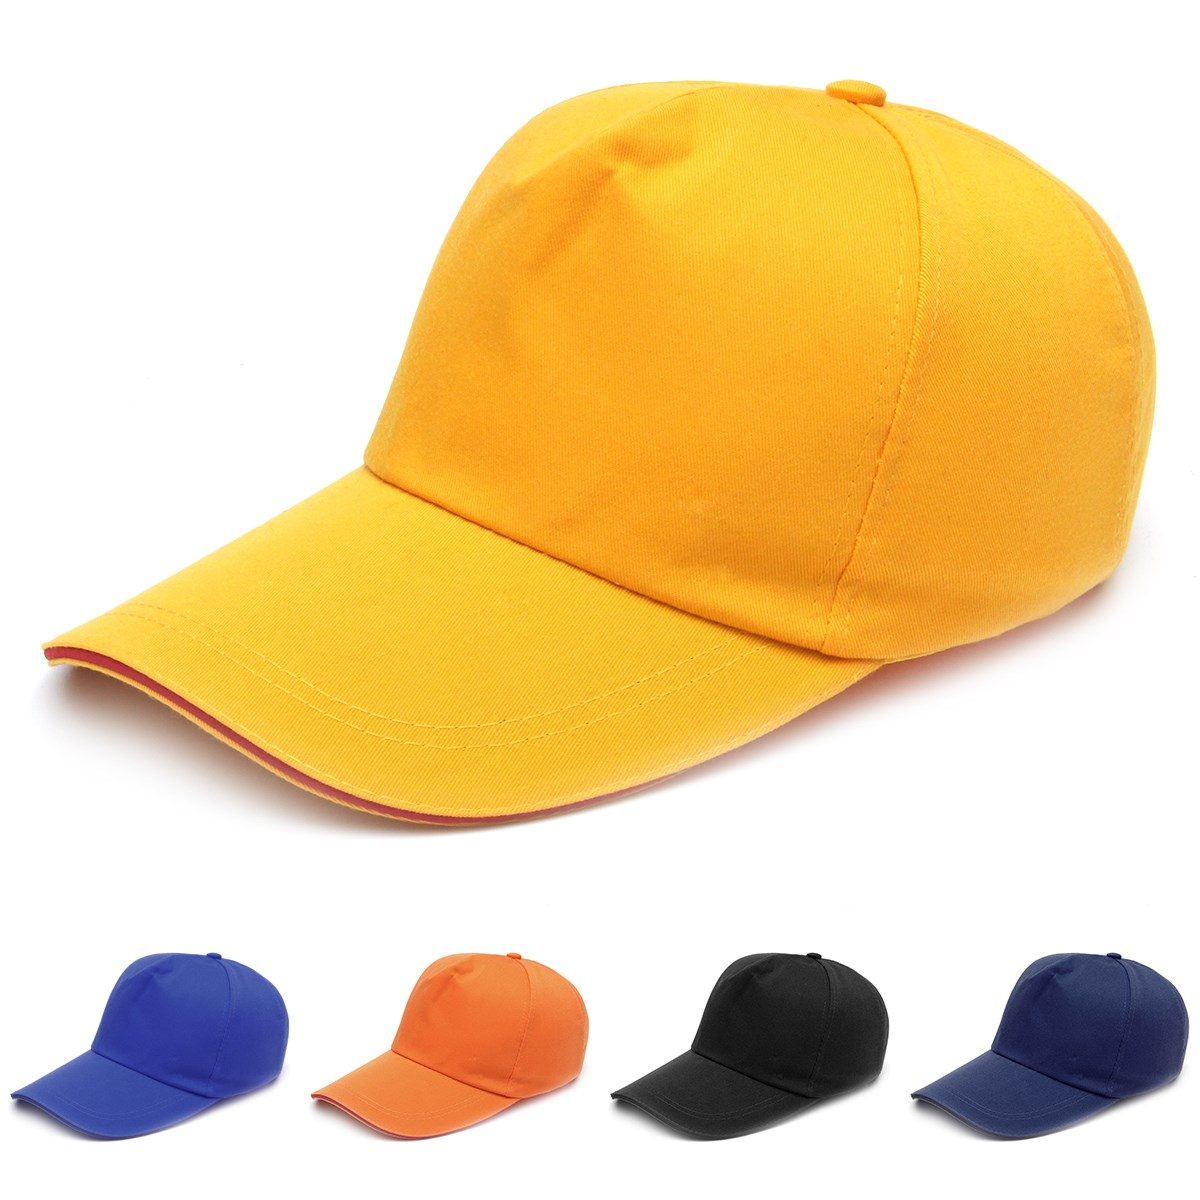 цена на Safurance Bump Cap Baseball Style Hard Hat Safety Head Protection Lightweight Work Safety Protection Safety Helmet